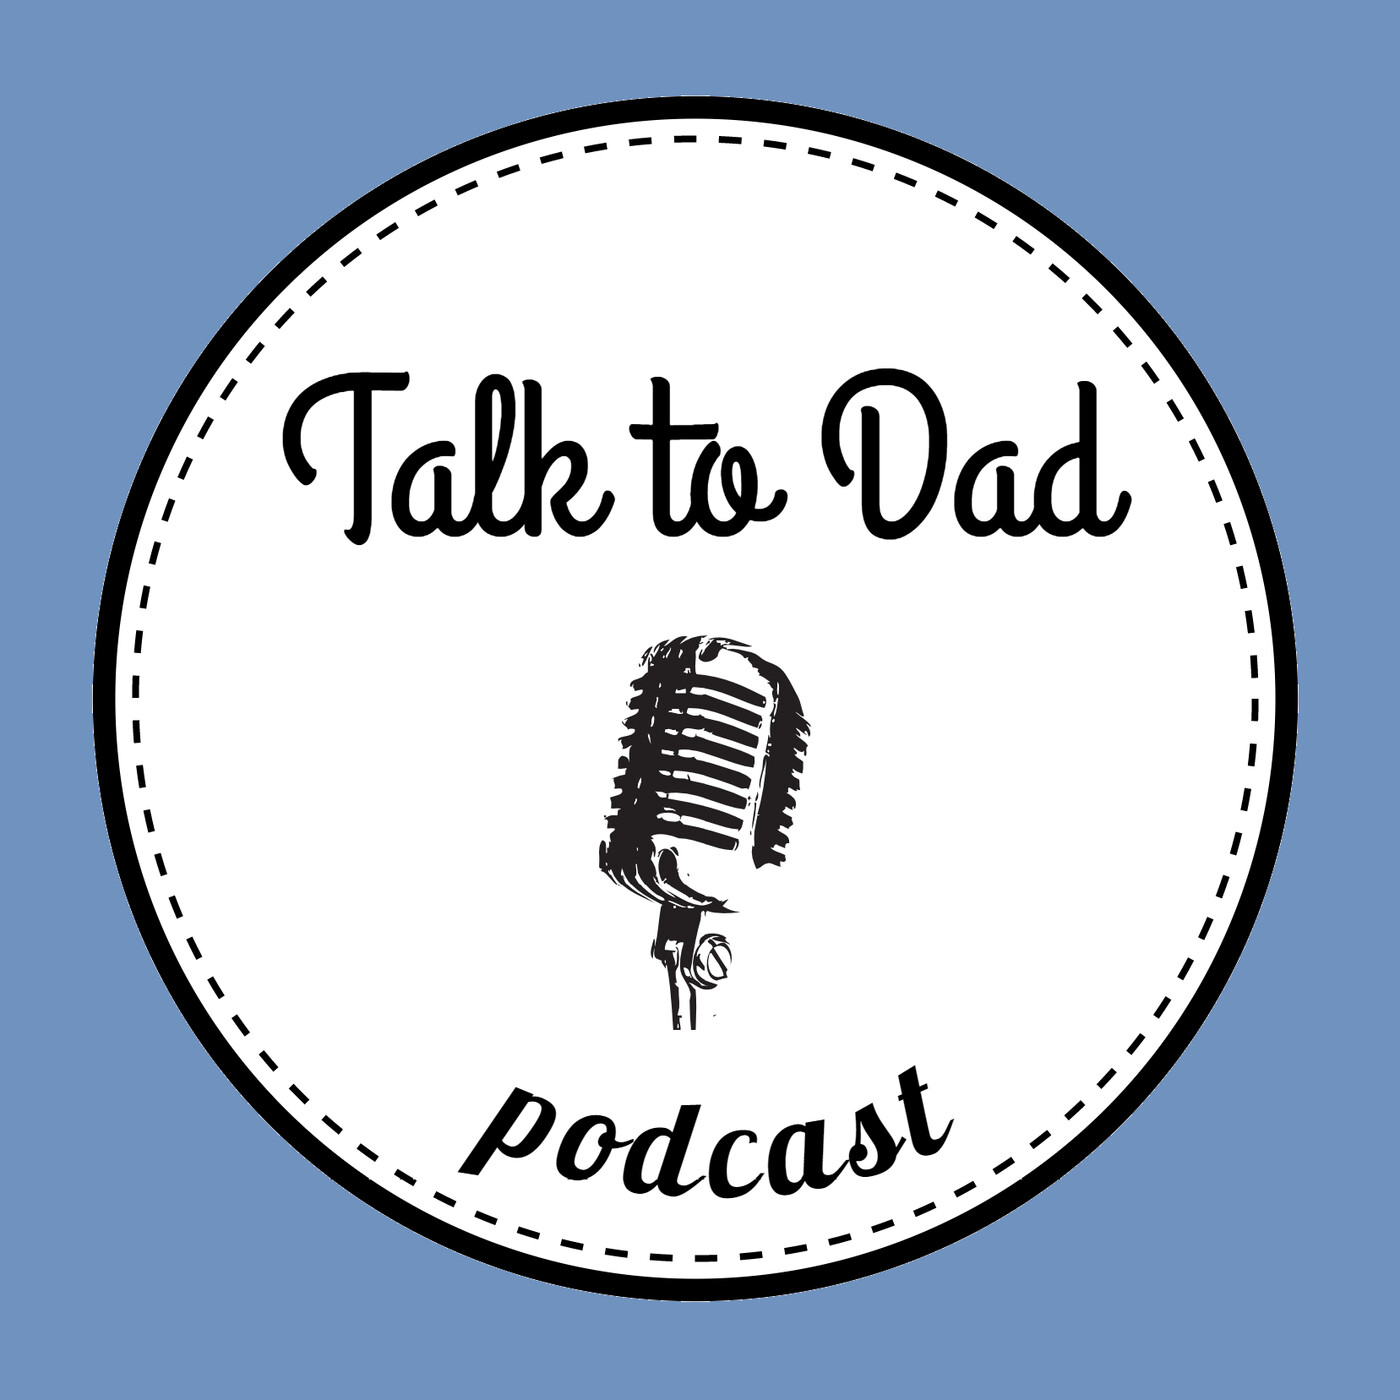 Episode 221 - Craftmatic Adjustable Beds, Film Noir Guy, and A Corgi Network on the Moon - Talk to Dad